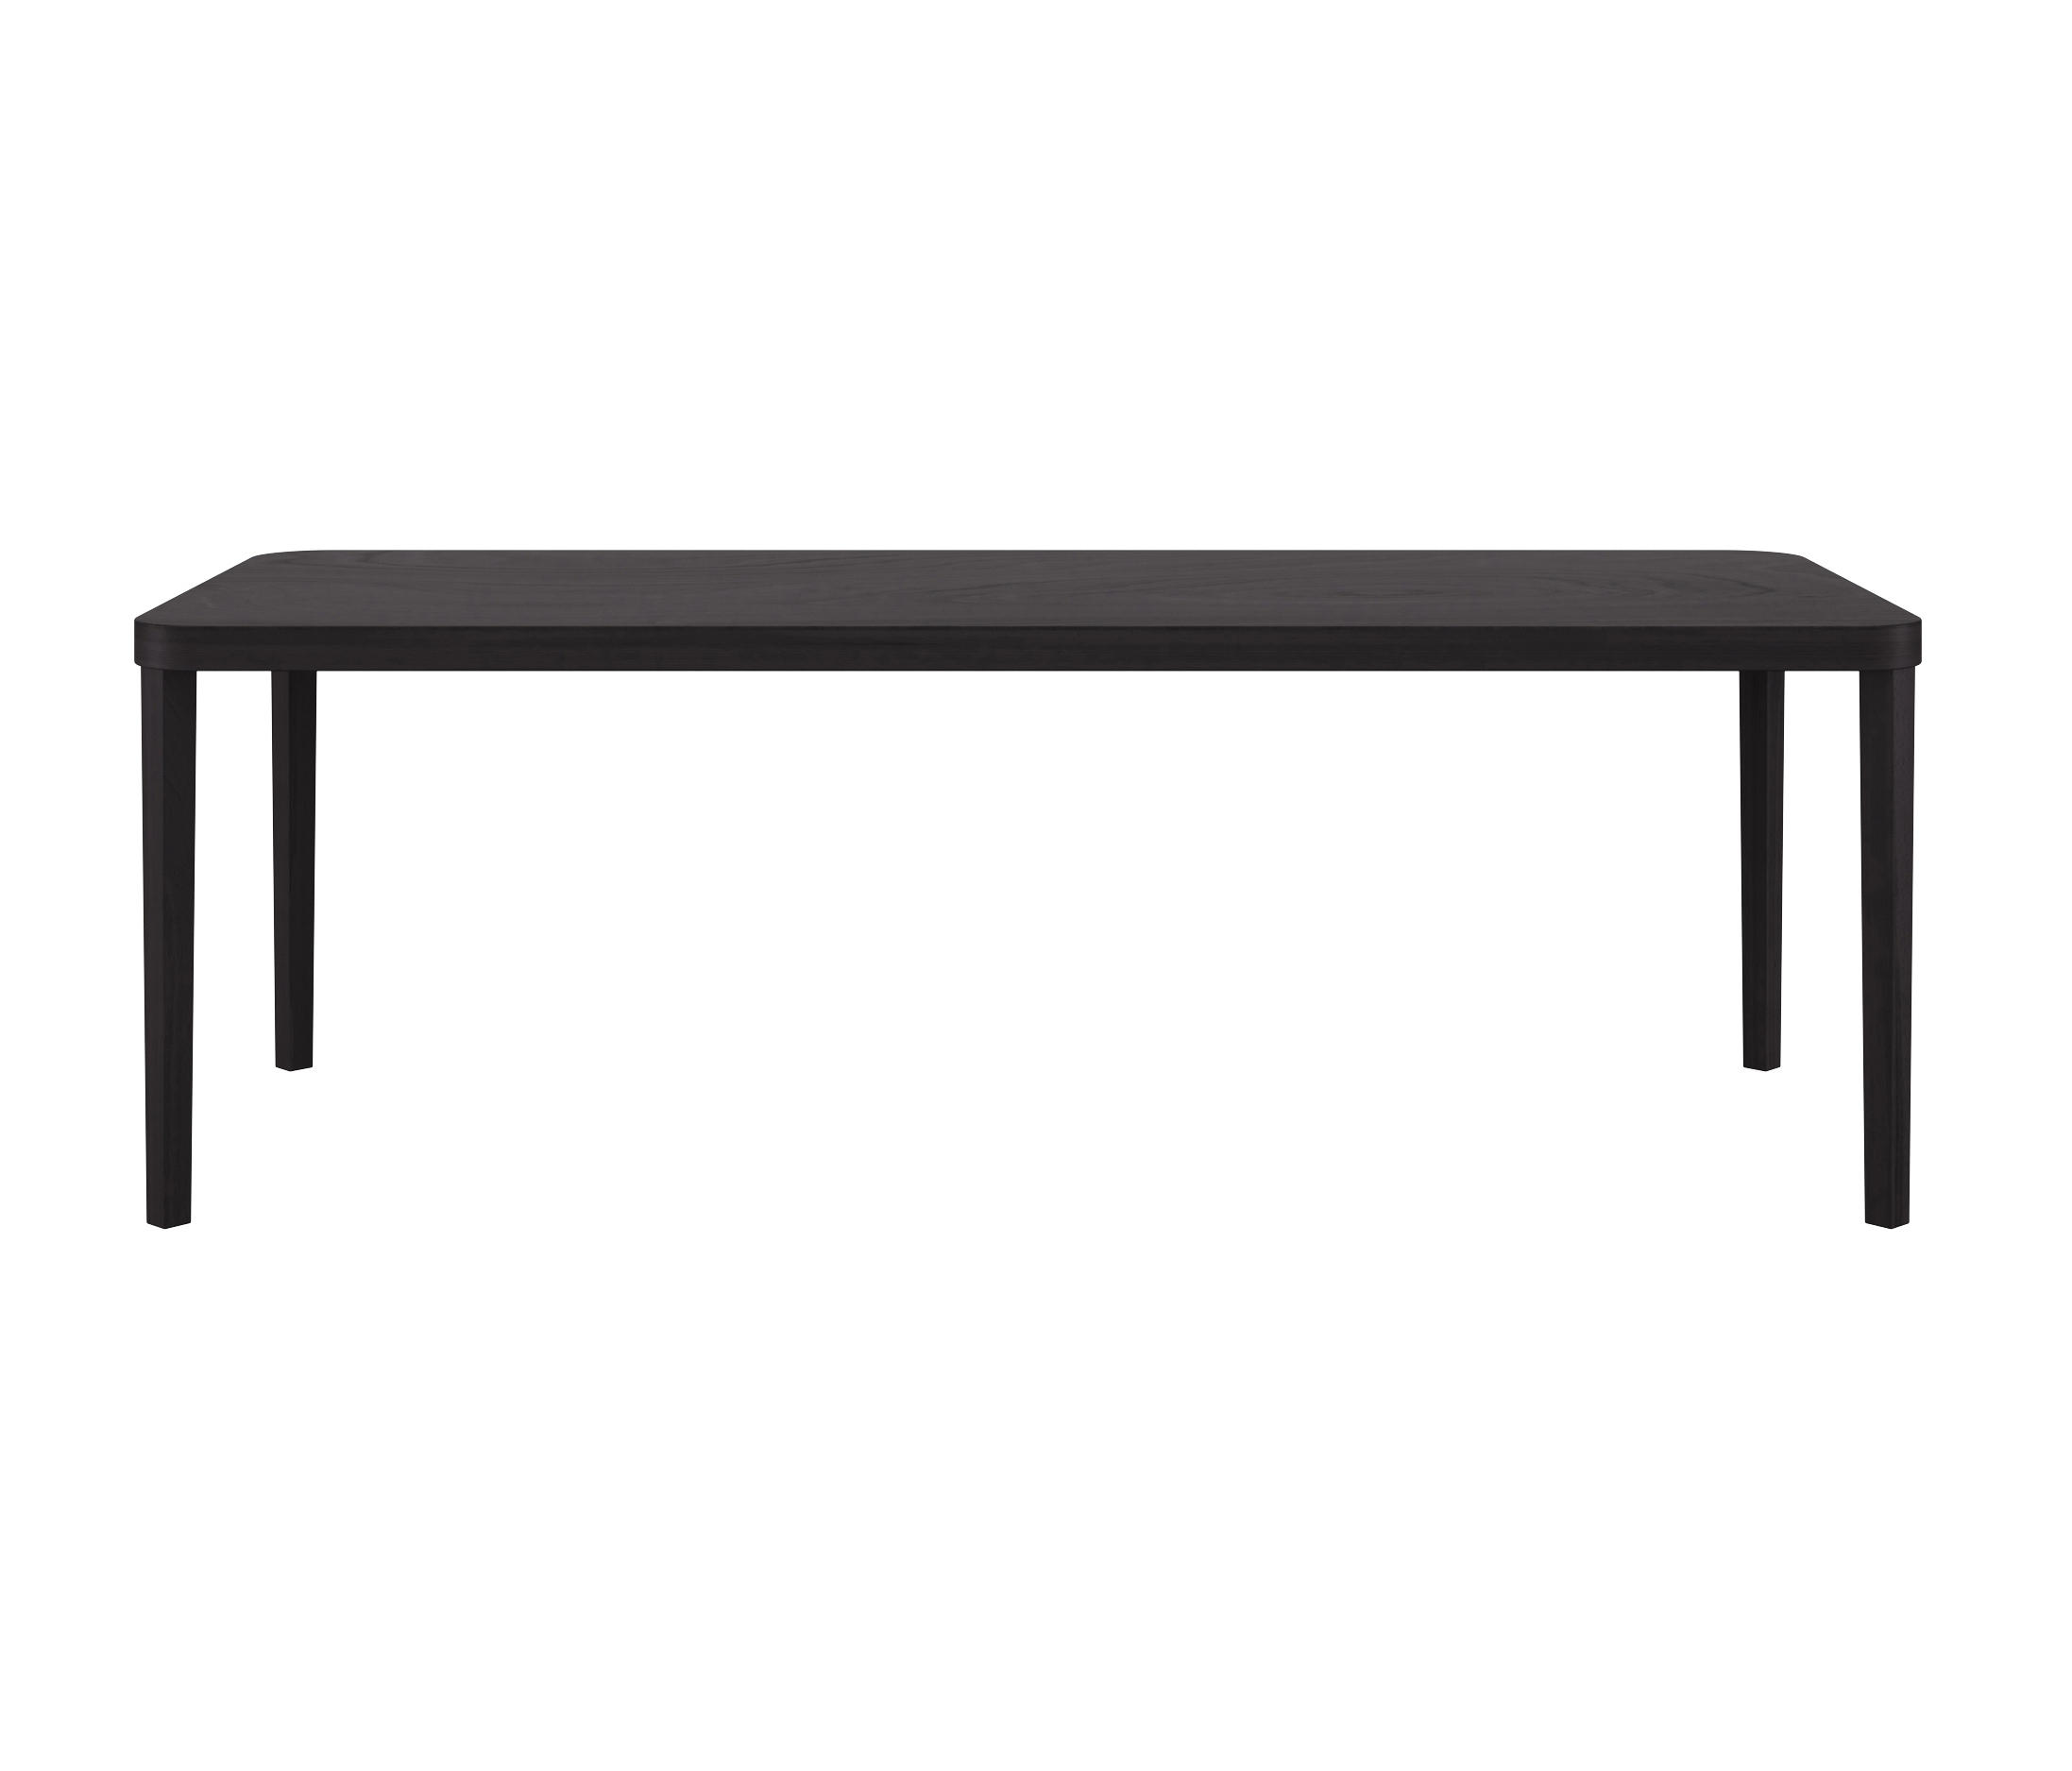 Ligne Roset Bern Glaris T 1700 Dining Tables From Horgenglarus Architonic